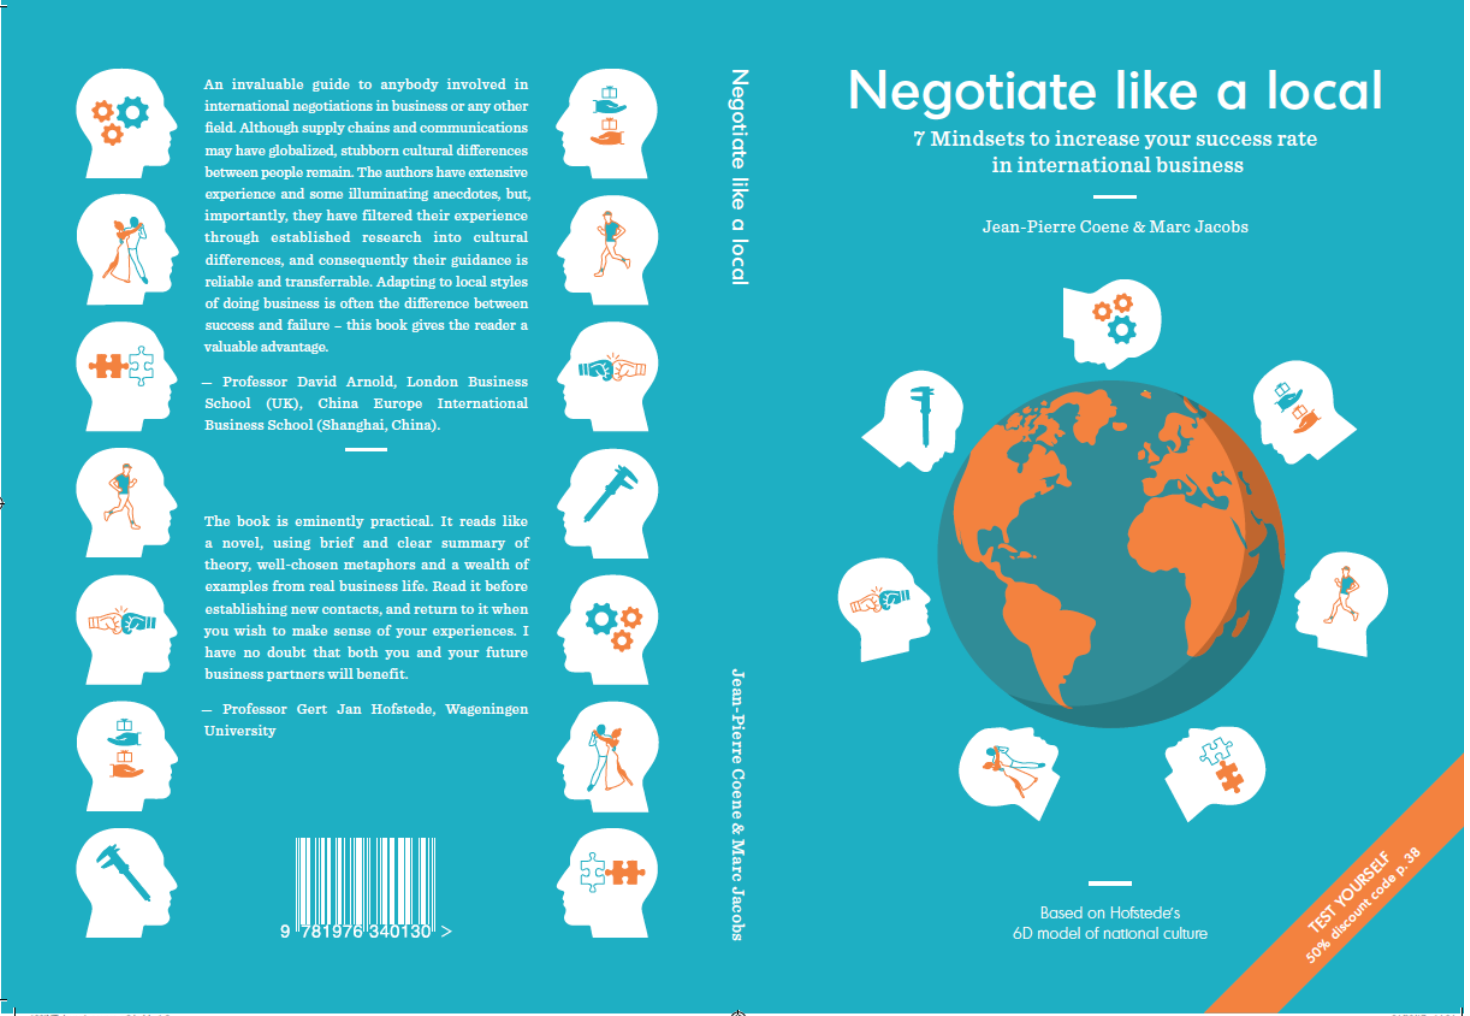 Negotiate like a local | the book